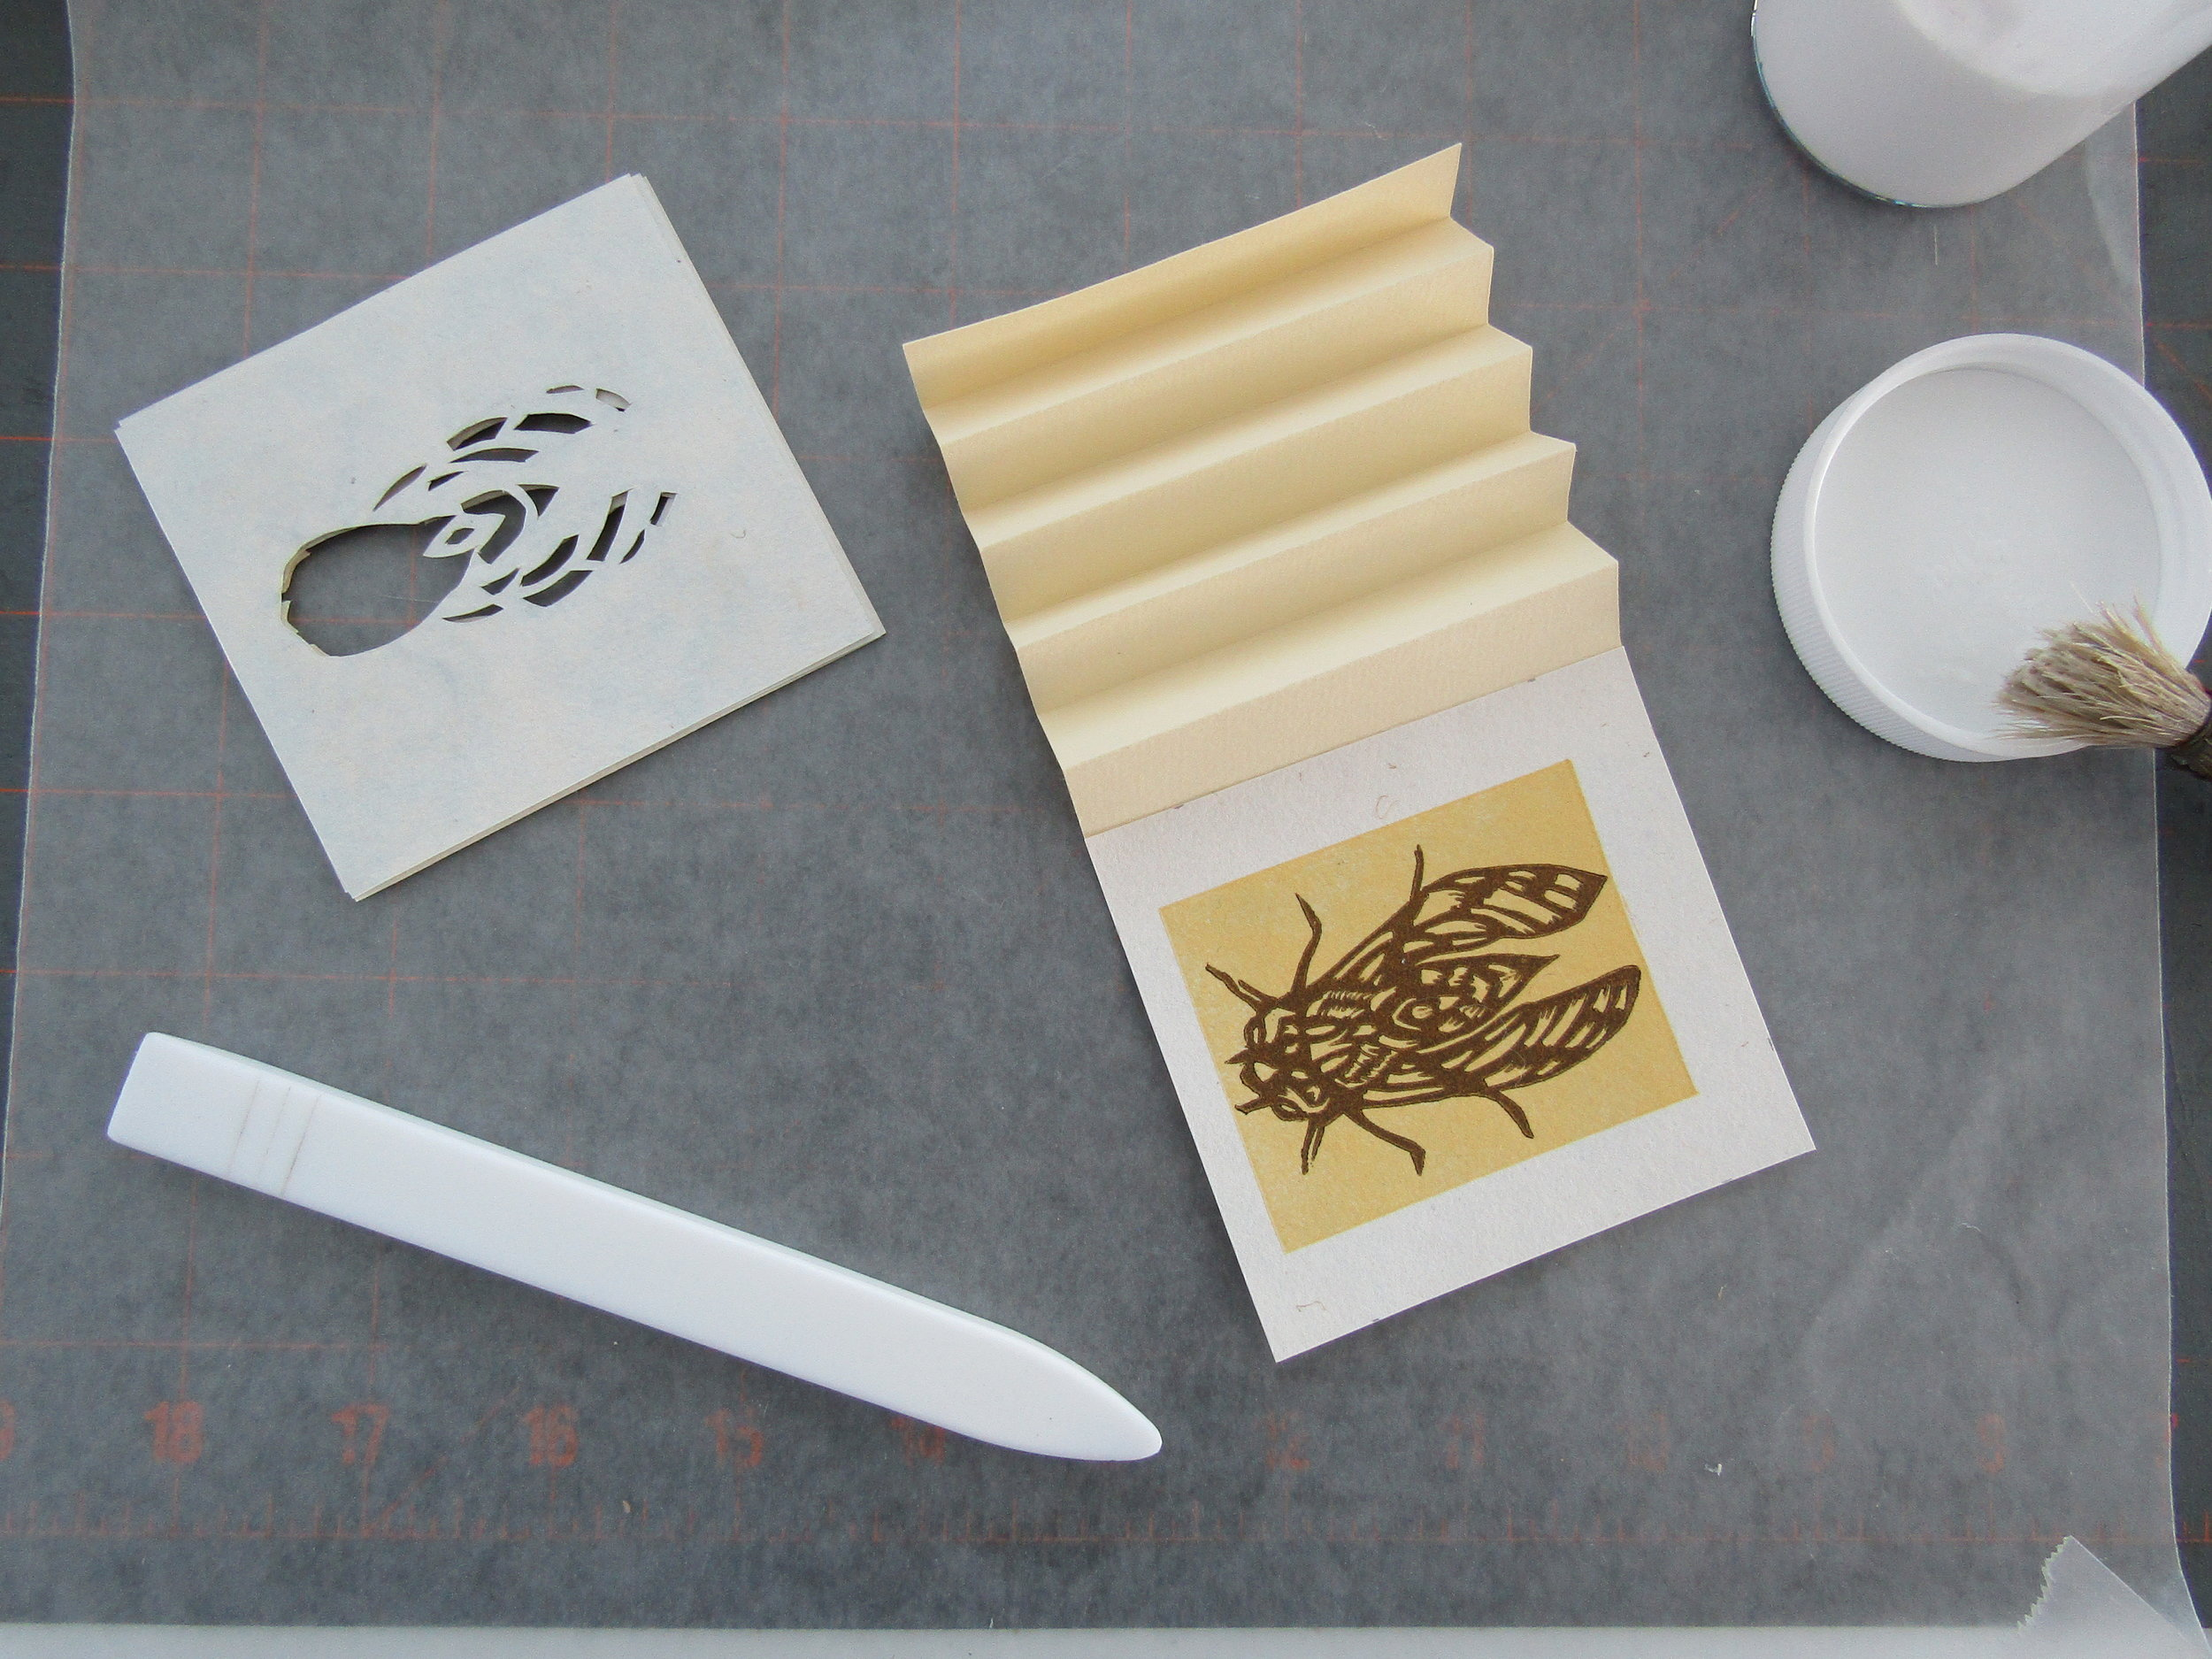 I constructed a tunnel book using layers from each print. Here is the cicada tunnel book underway. I cut away layers for each insect for each tunnel book.